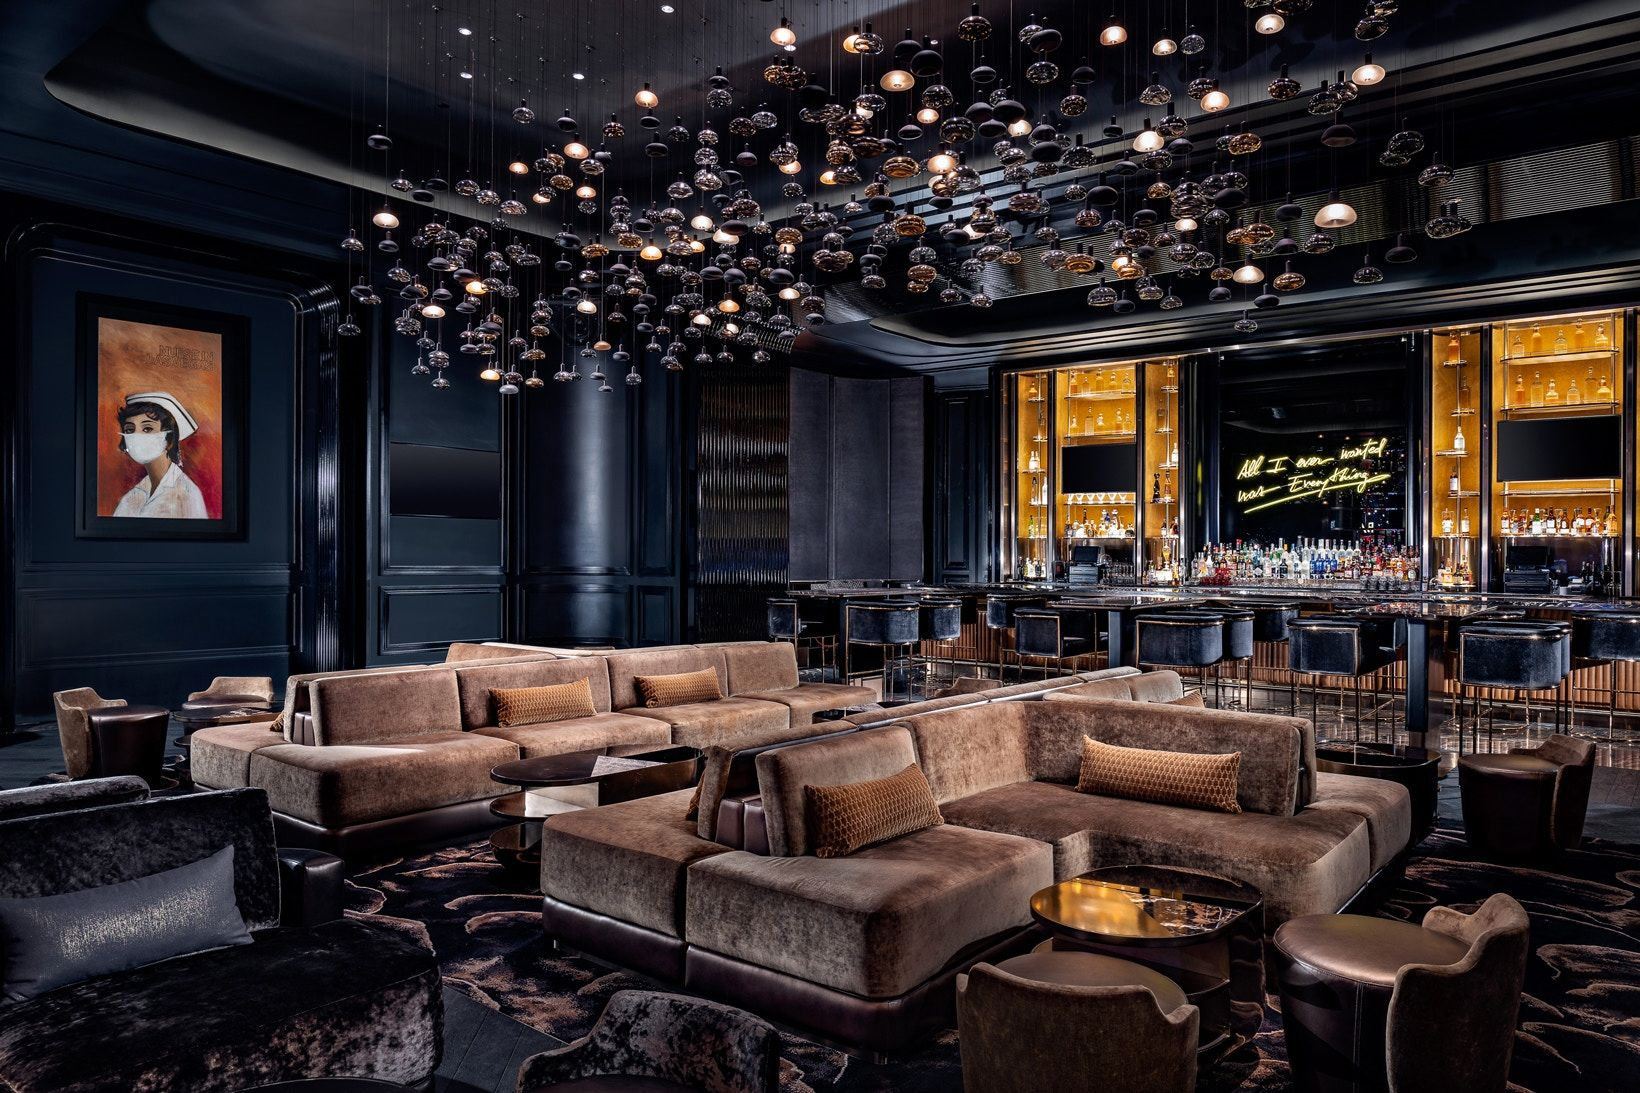 4 Las Vegas Bars To Add To Your Bucket List